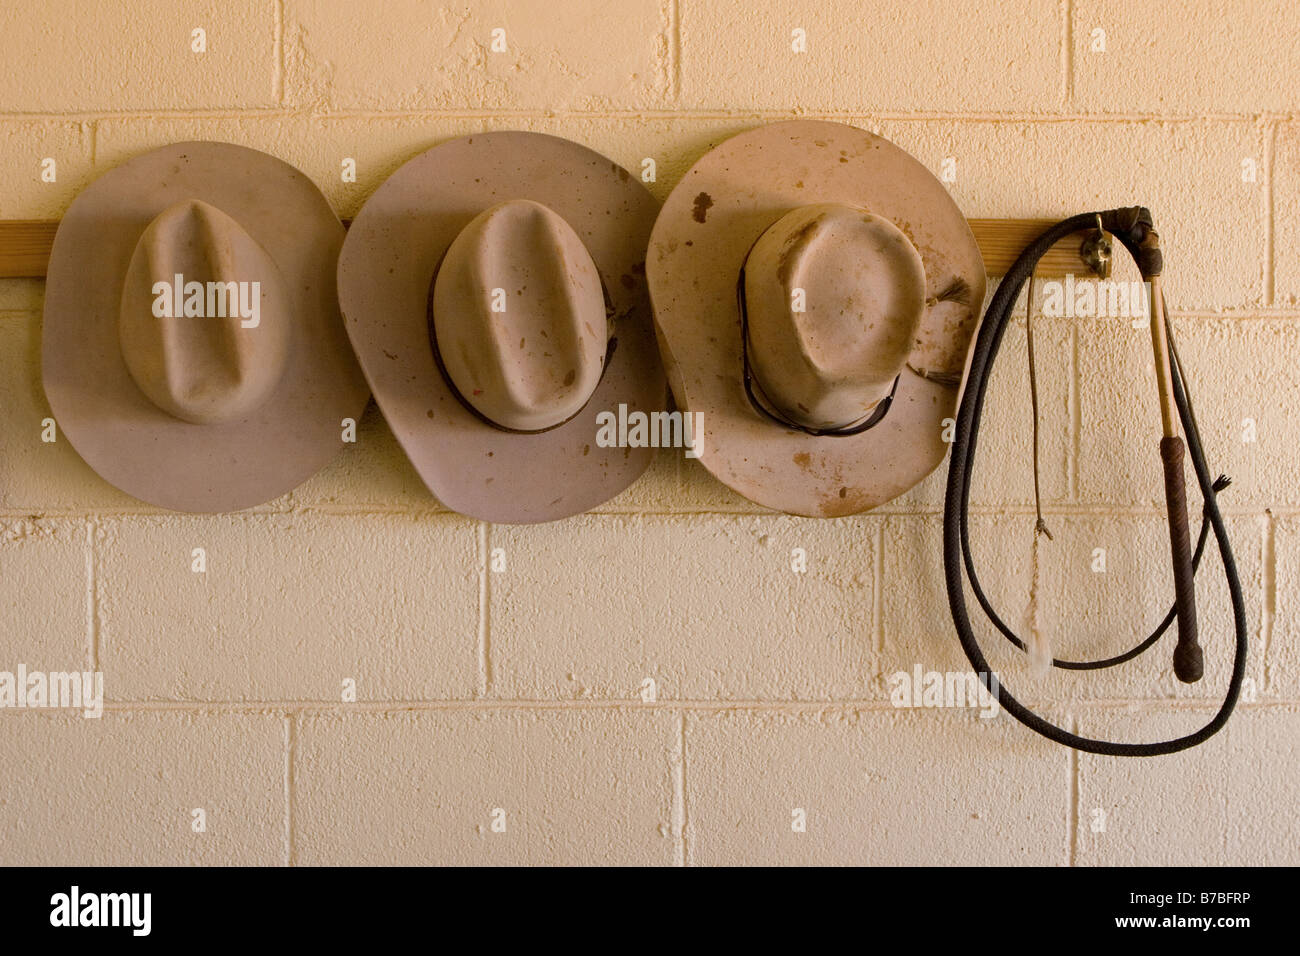 Three cowboy or stockmen hats and whip hanging on wall - Stock Image